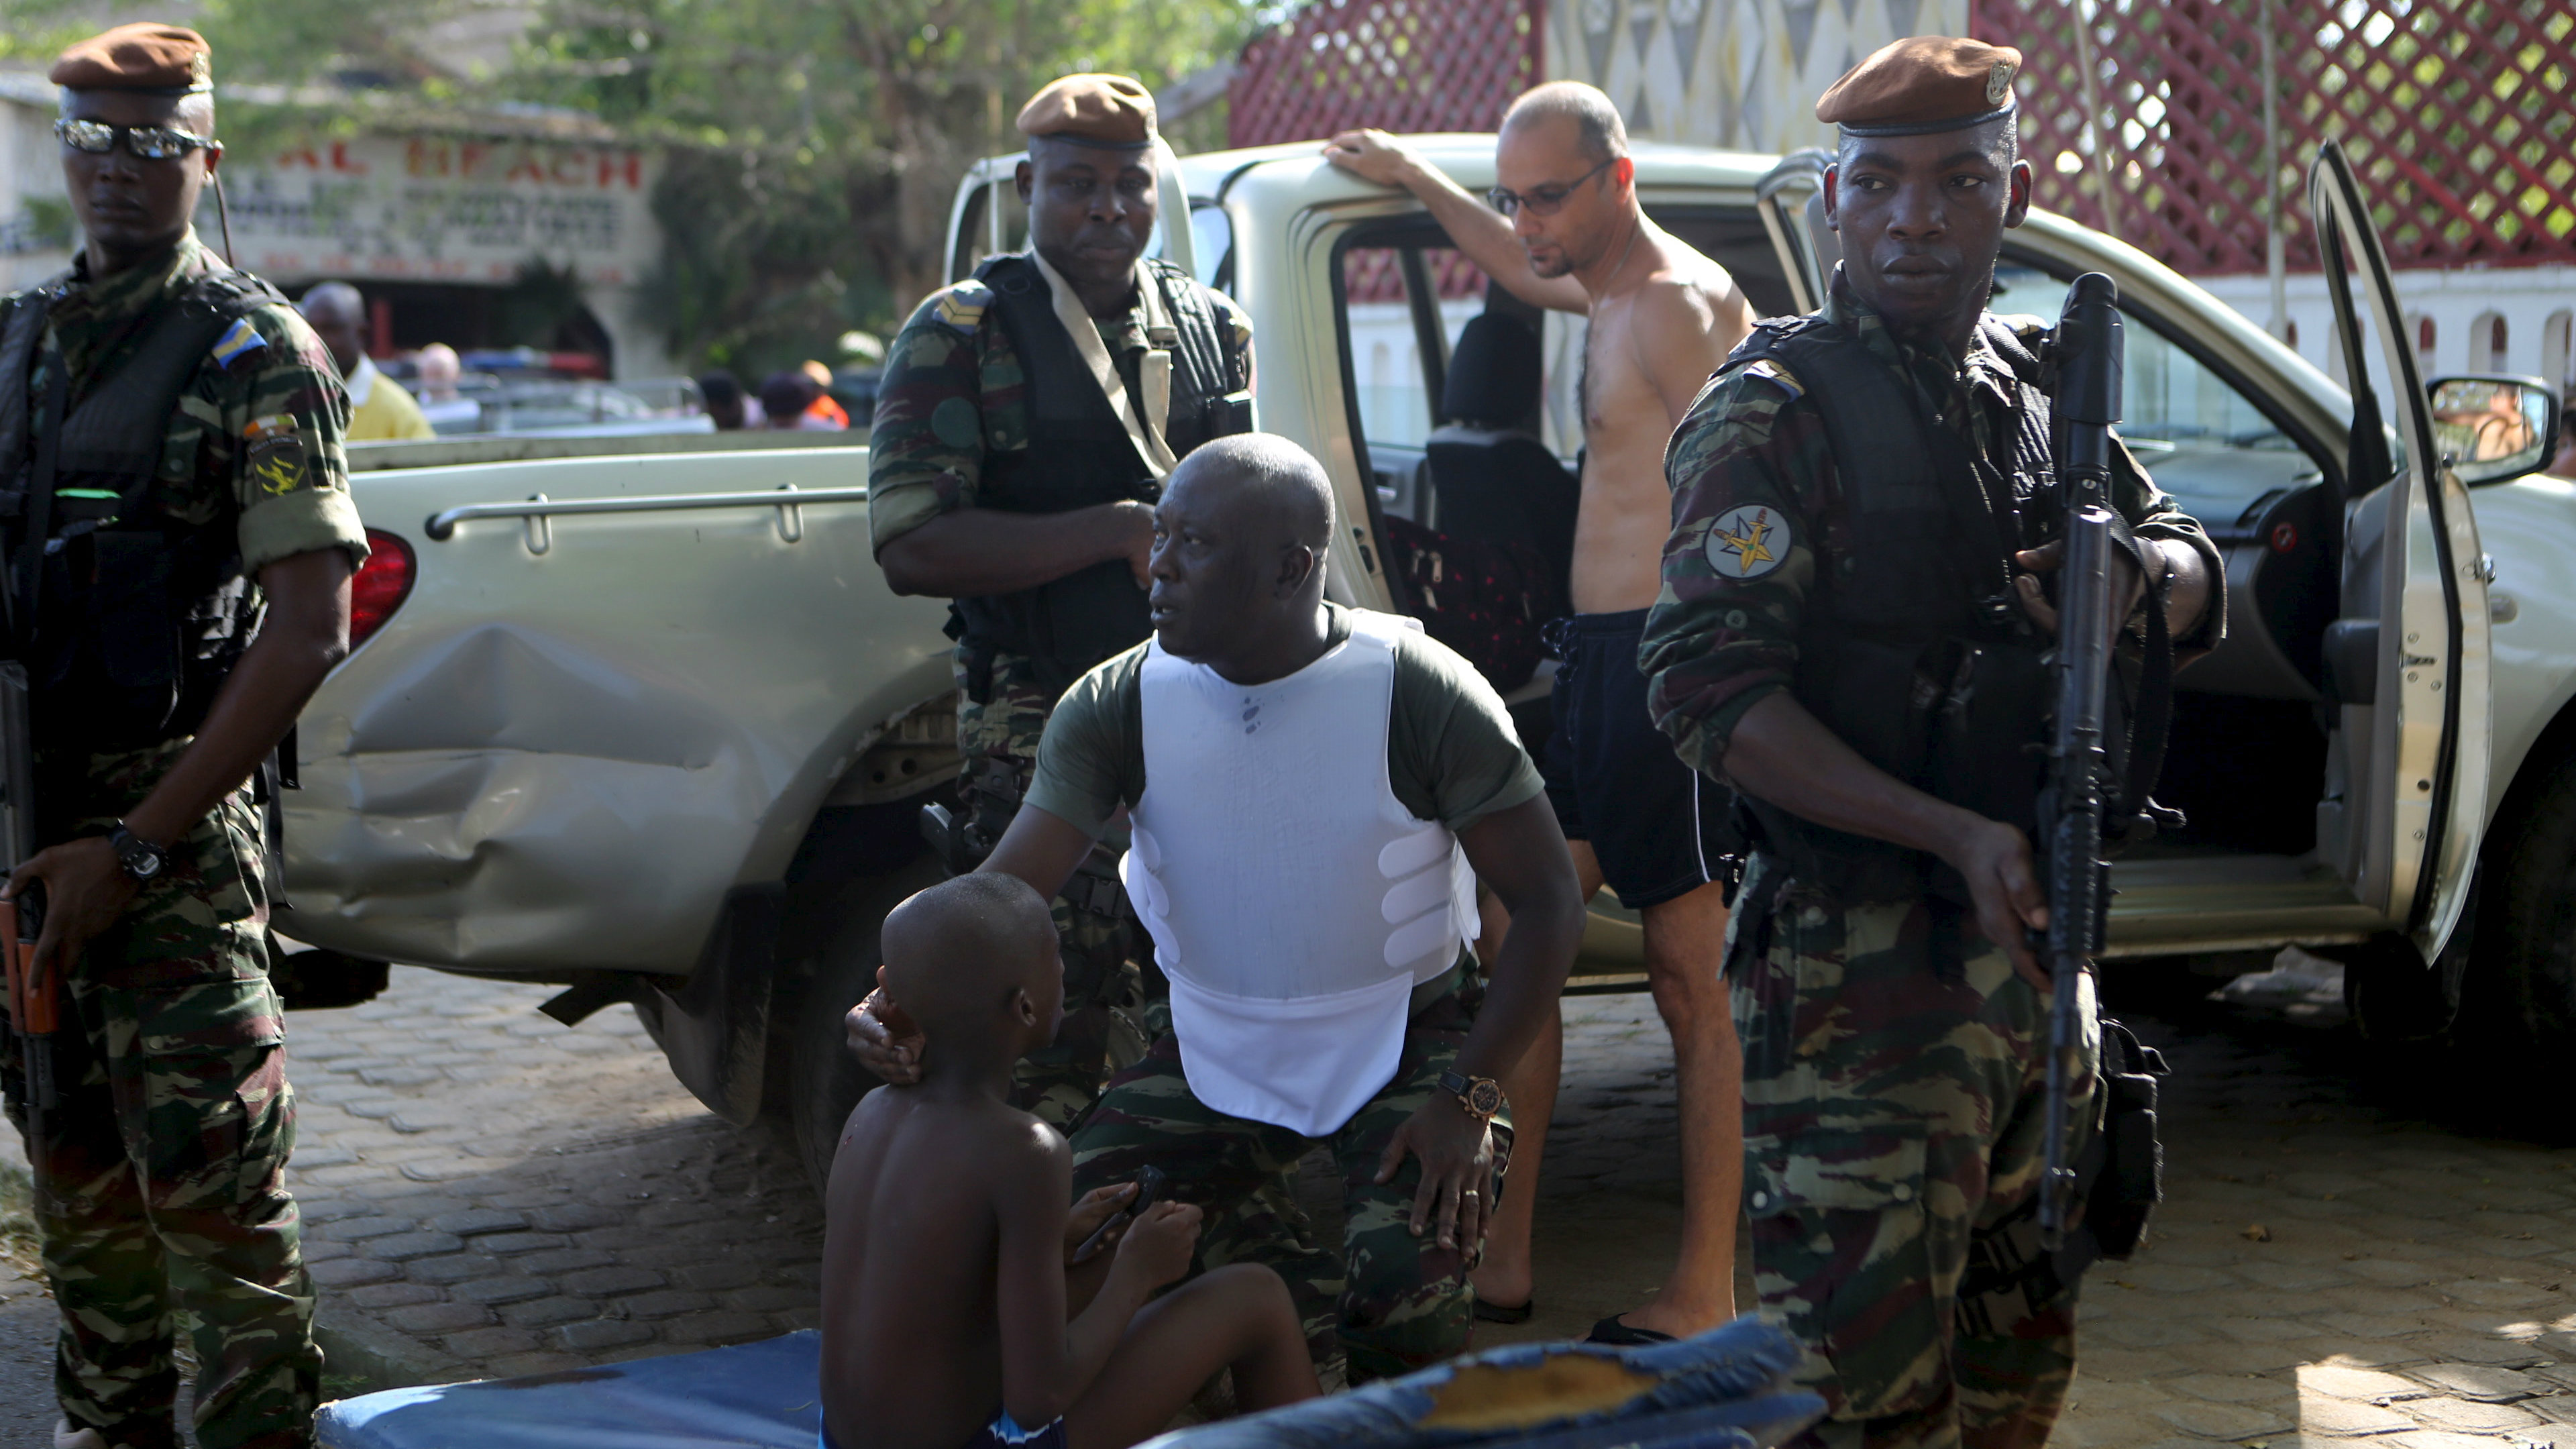 A soldier comforts an injured boy in Bassam, Ivory Coast, following an attack that left 18 people dead.